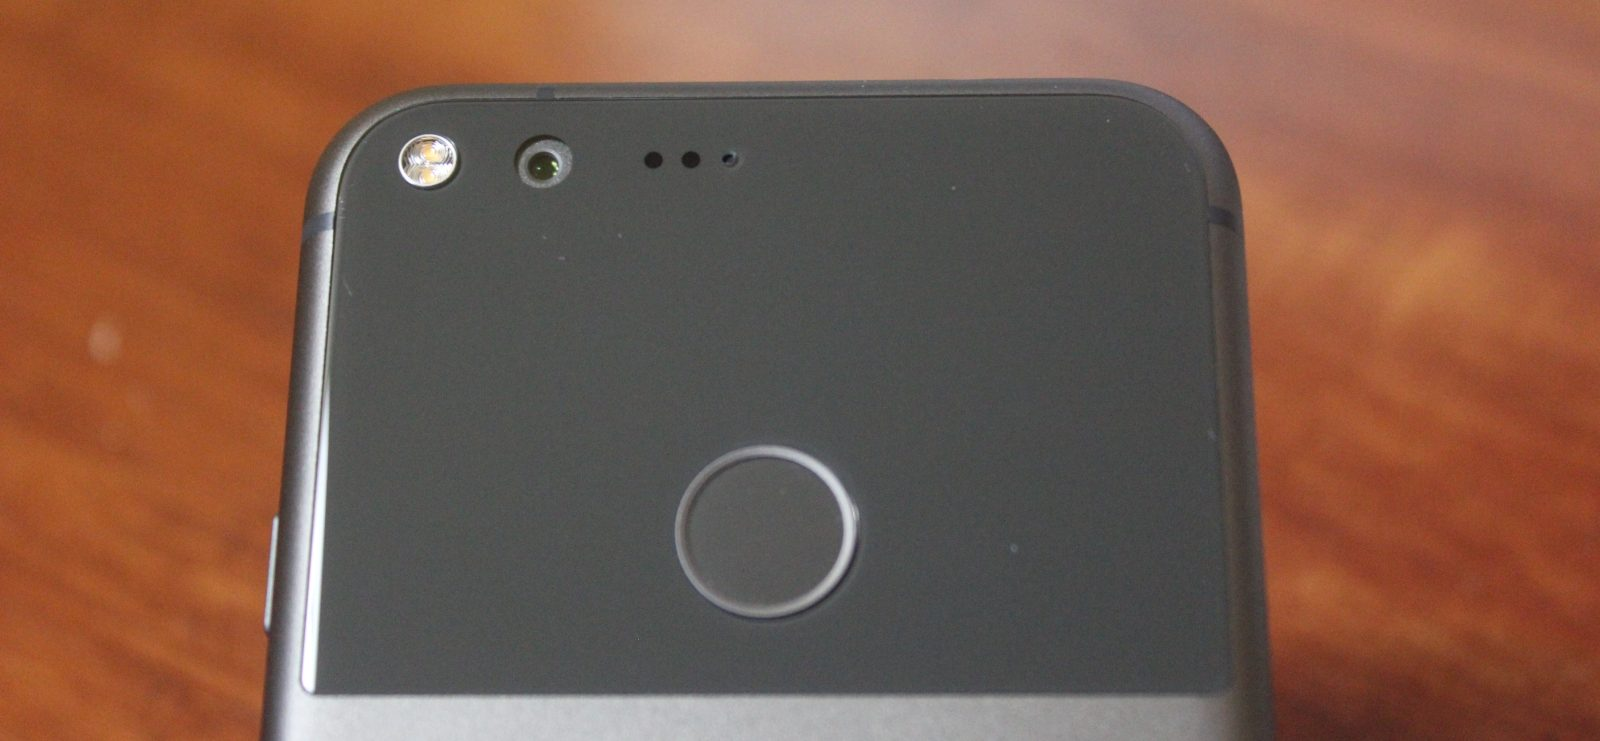 [Update: One more patch] Google stops updating the original Pixel and Pixel XL